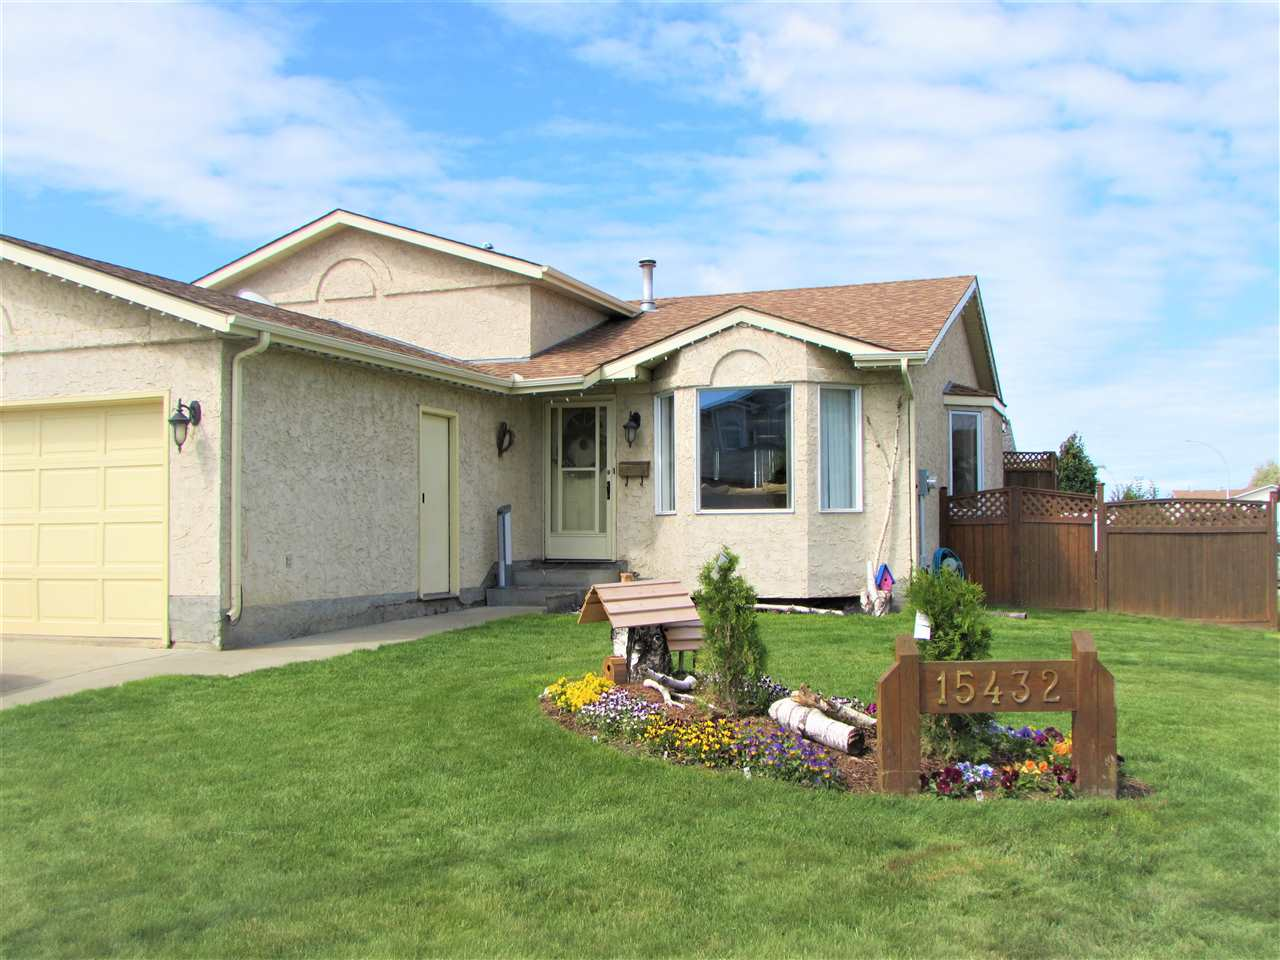 MLS® listing #E4164741 for sale located at 15432 68 Street